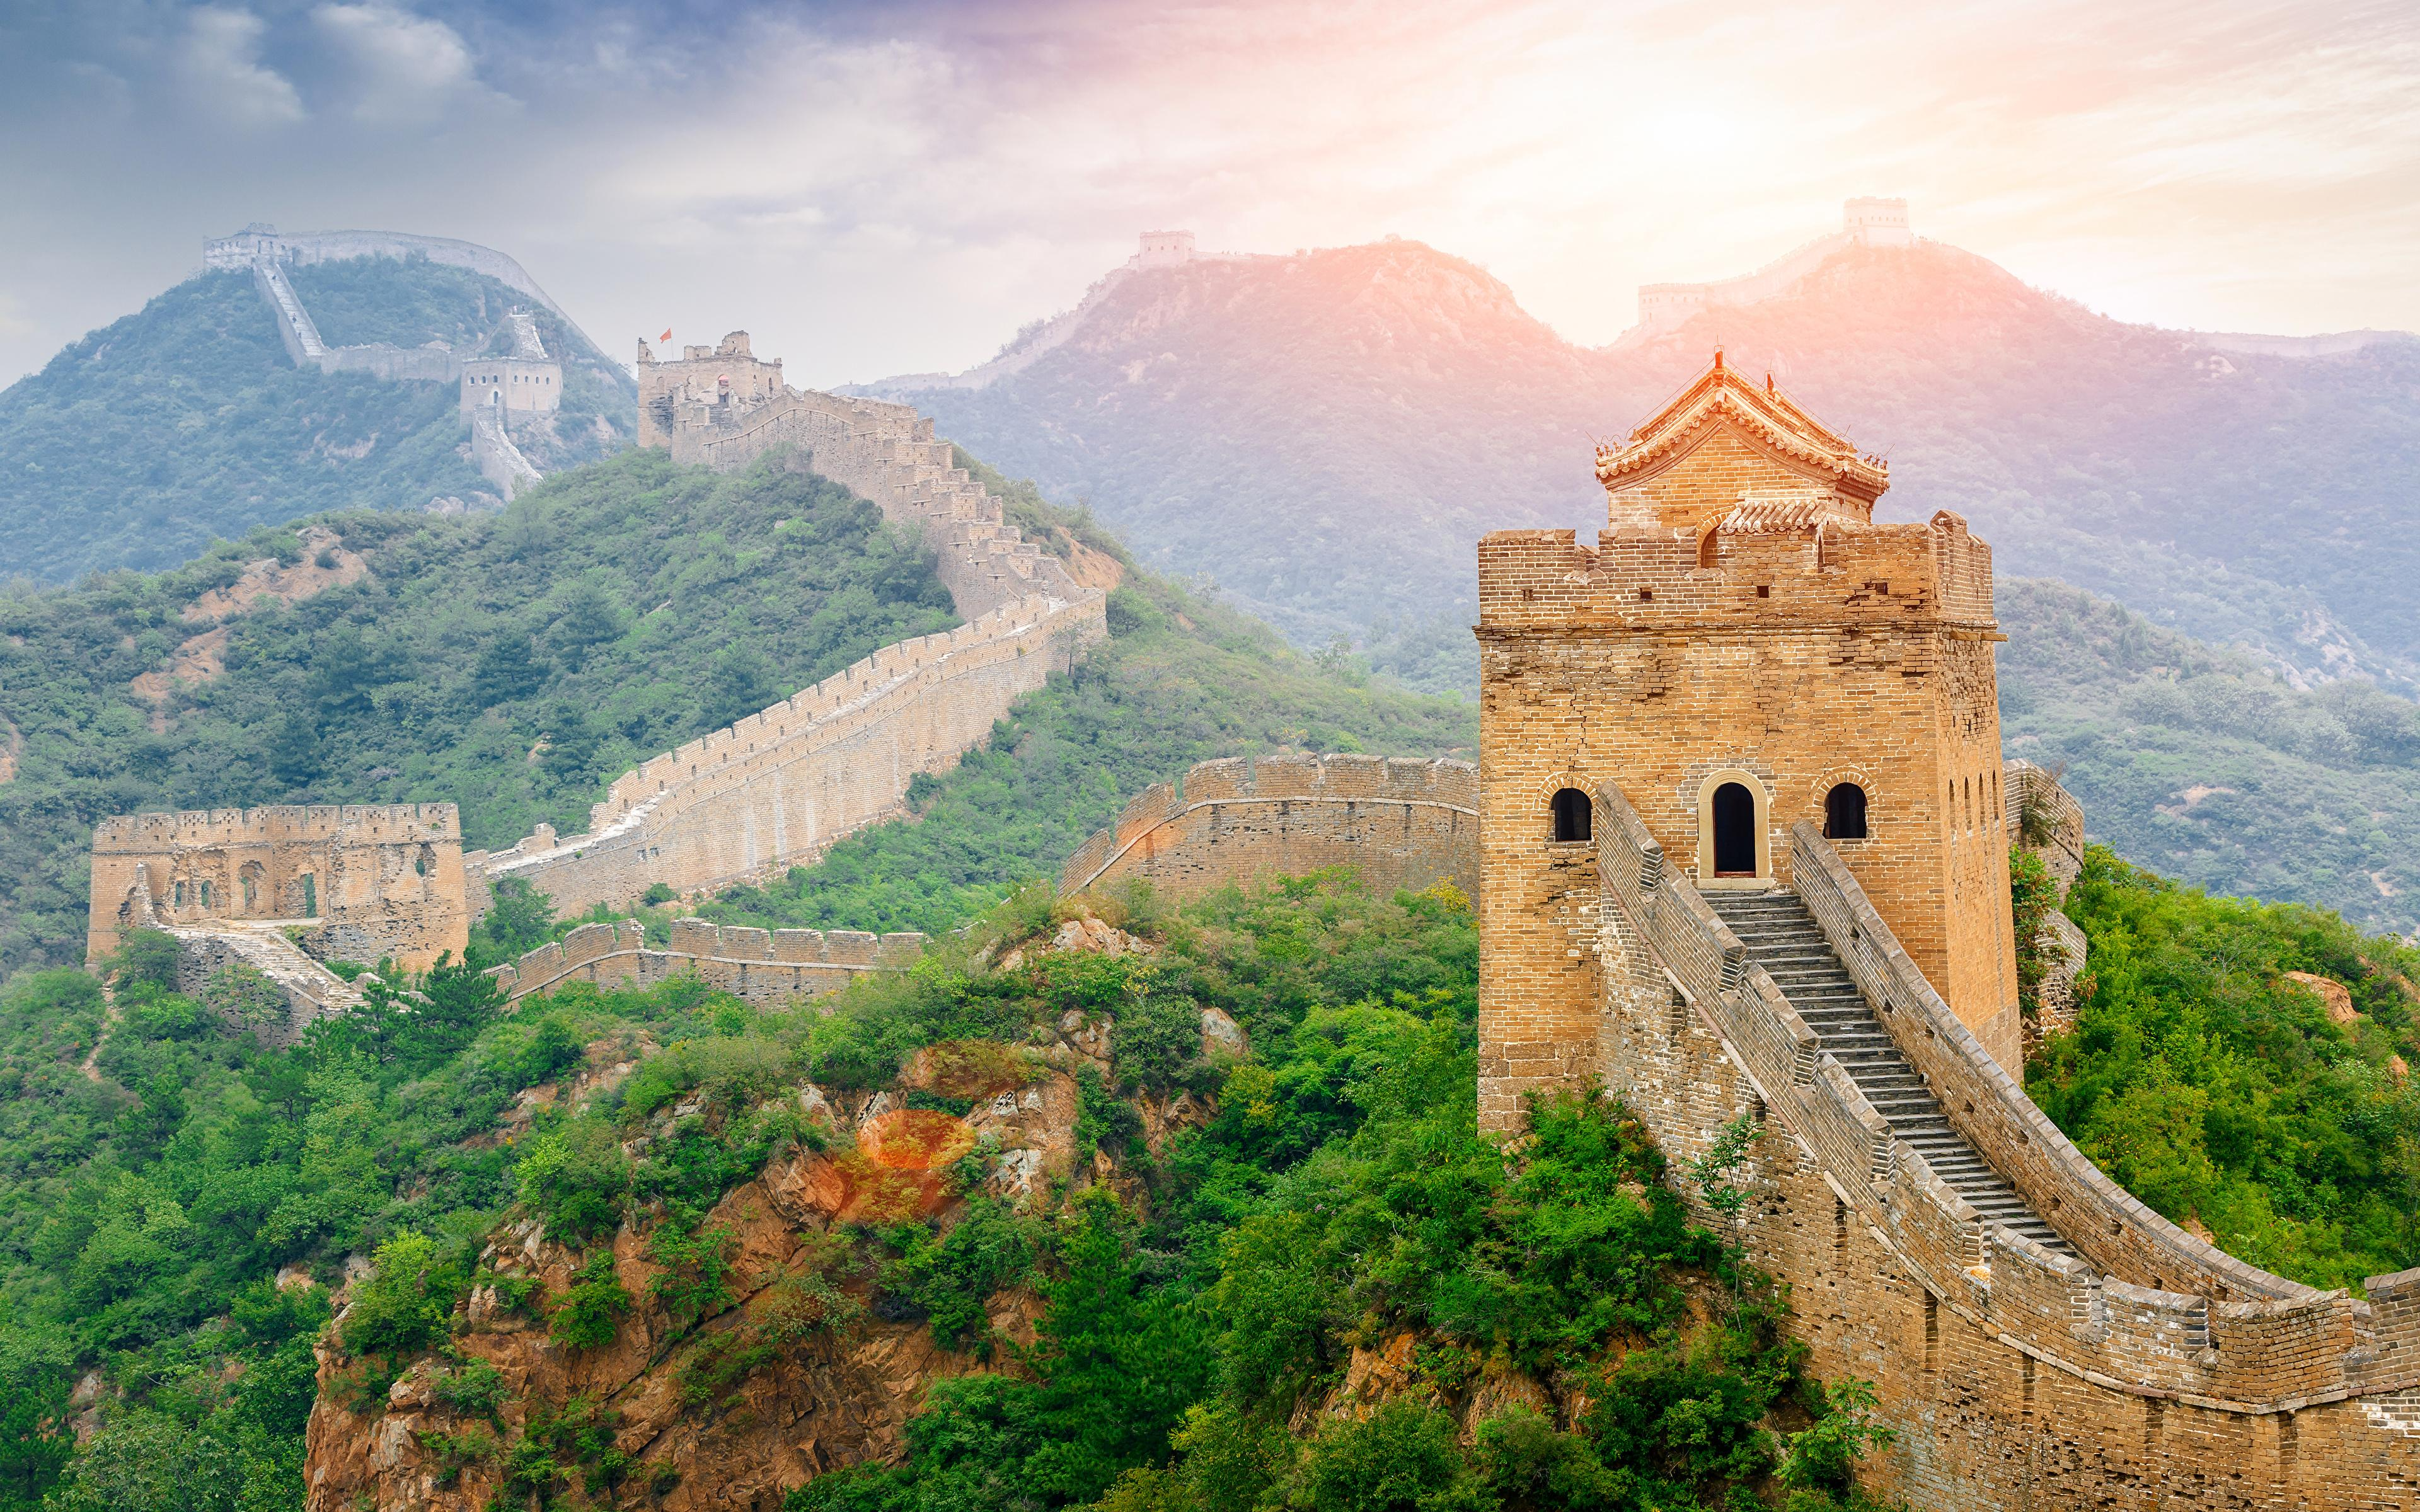 Wallpapers China Nature Mountains The Great Wall of China 3840x2400